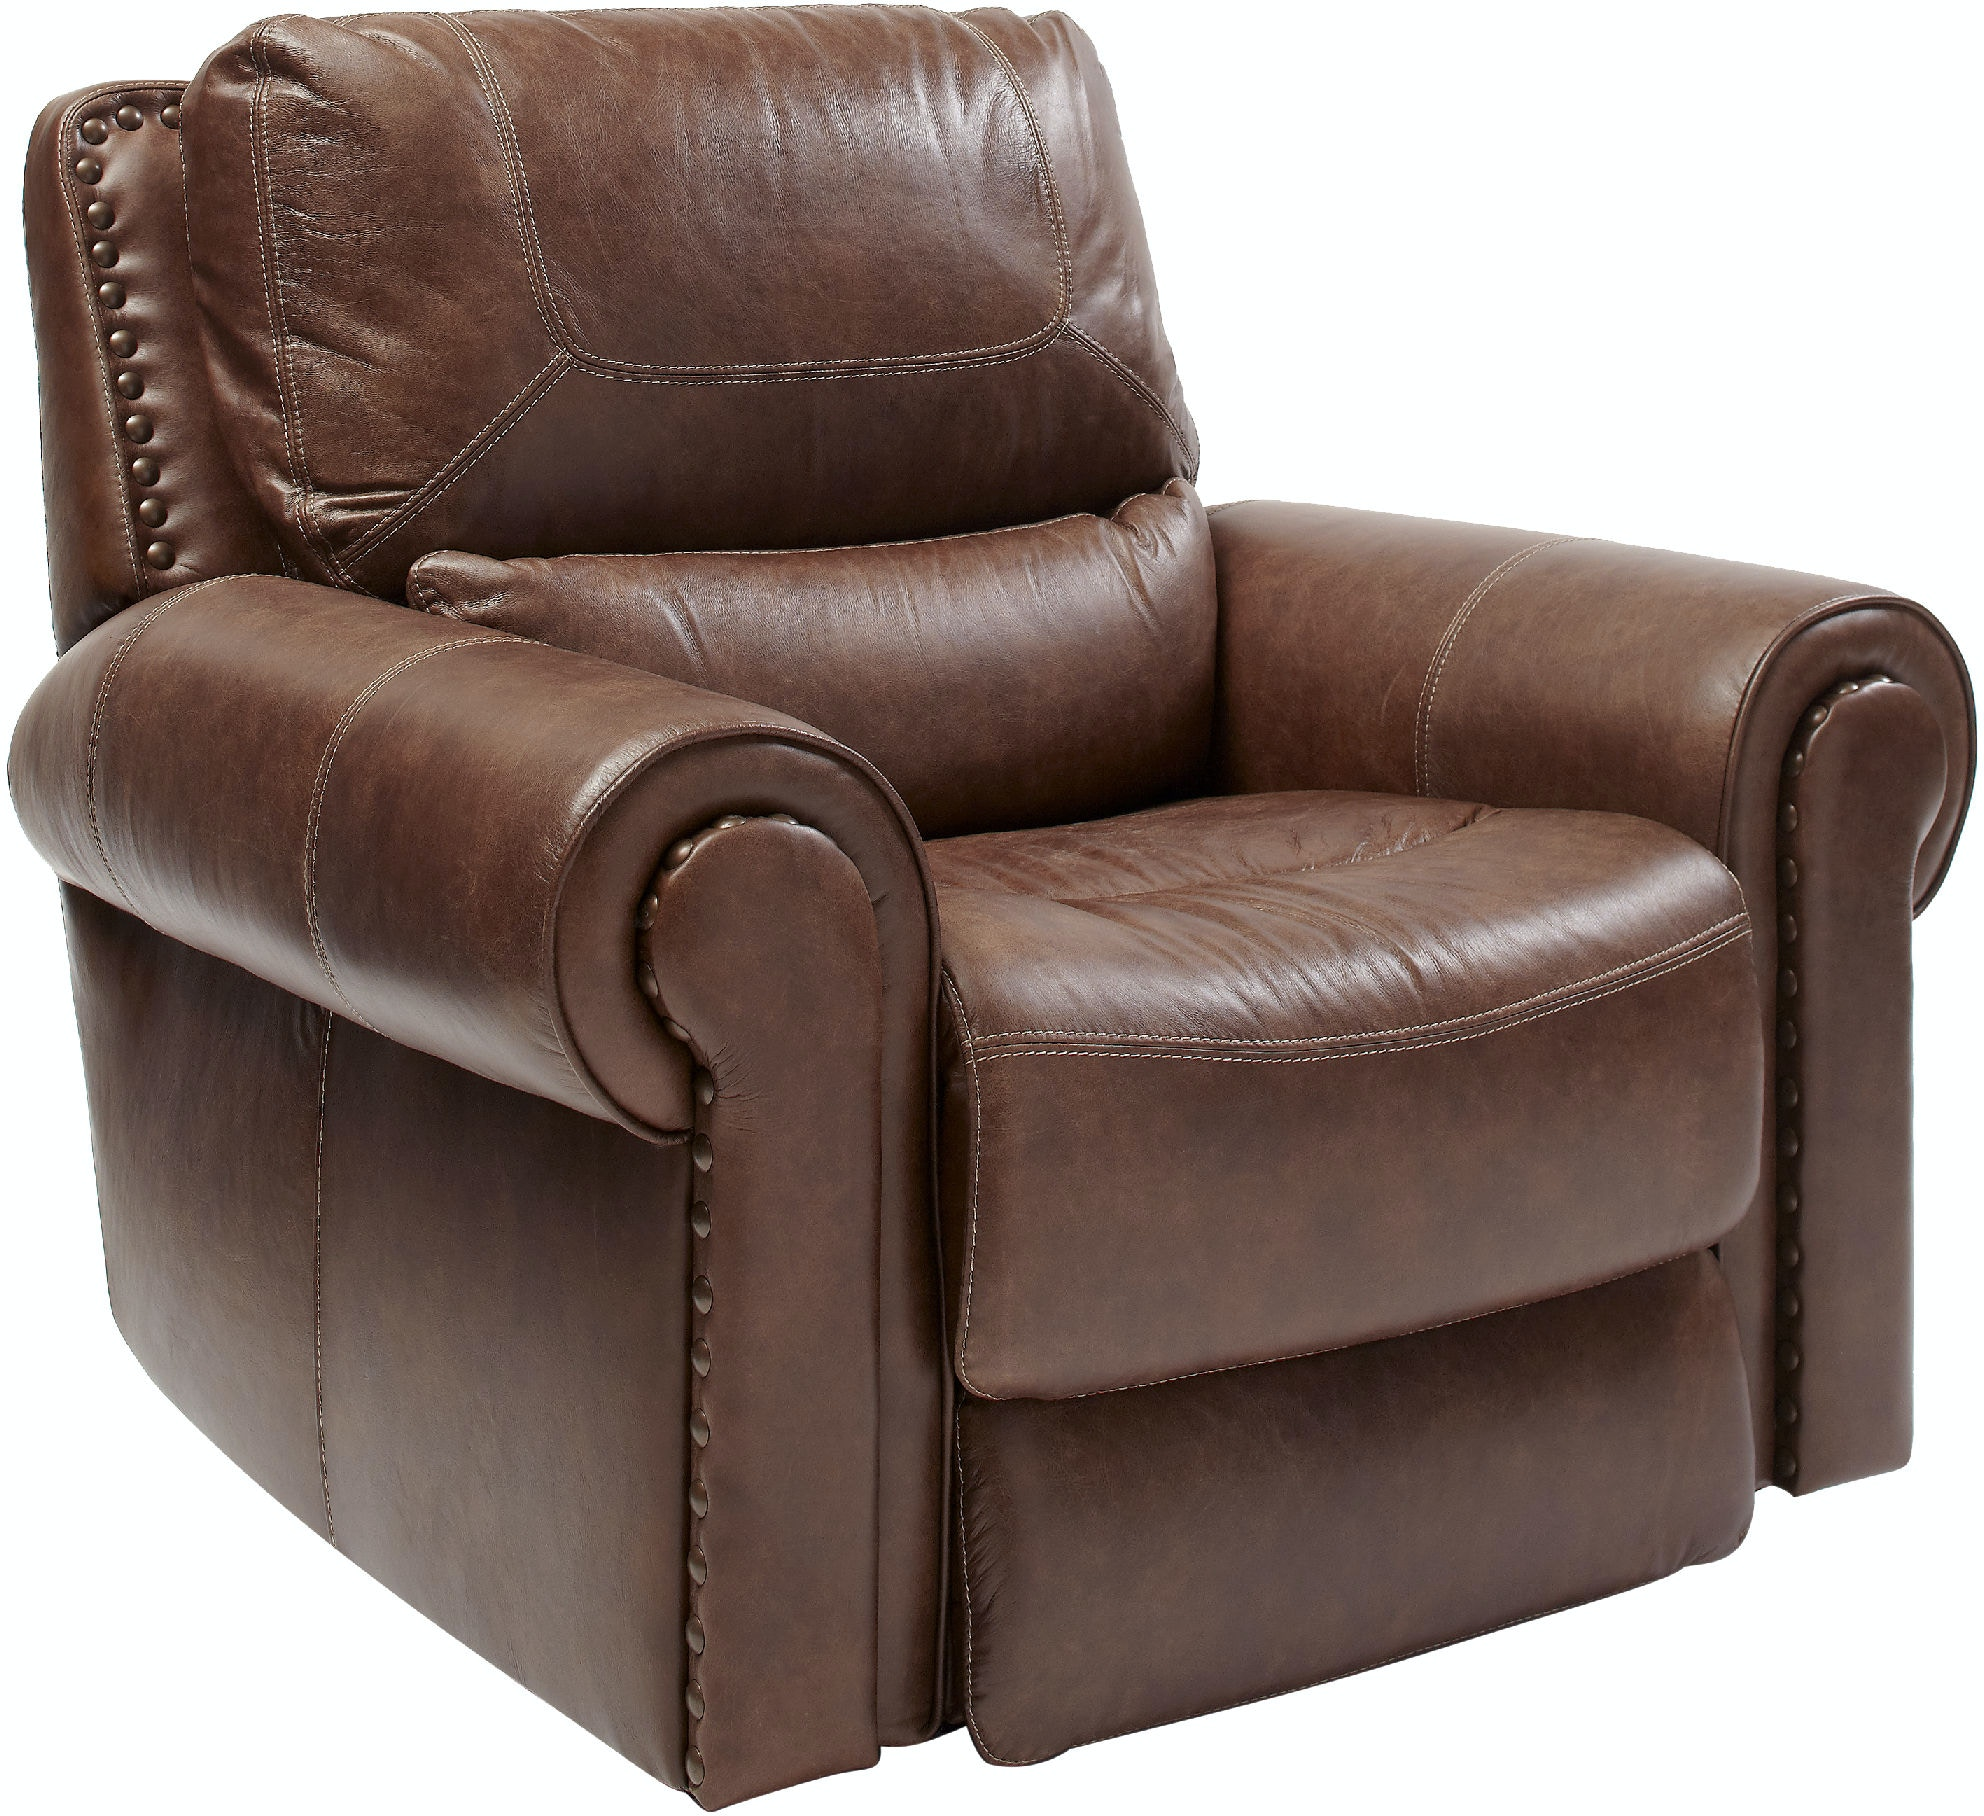 Recliners That Look Like Chairs Living Room Stcharles Leather Power Recliner